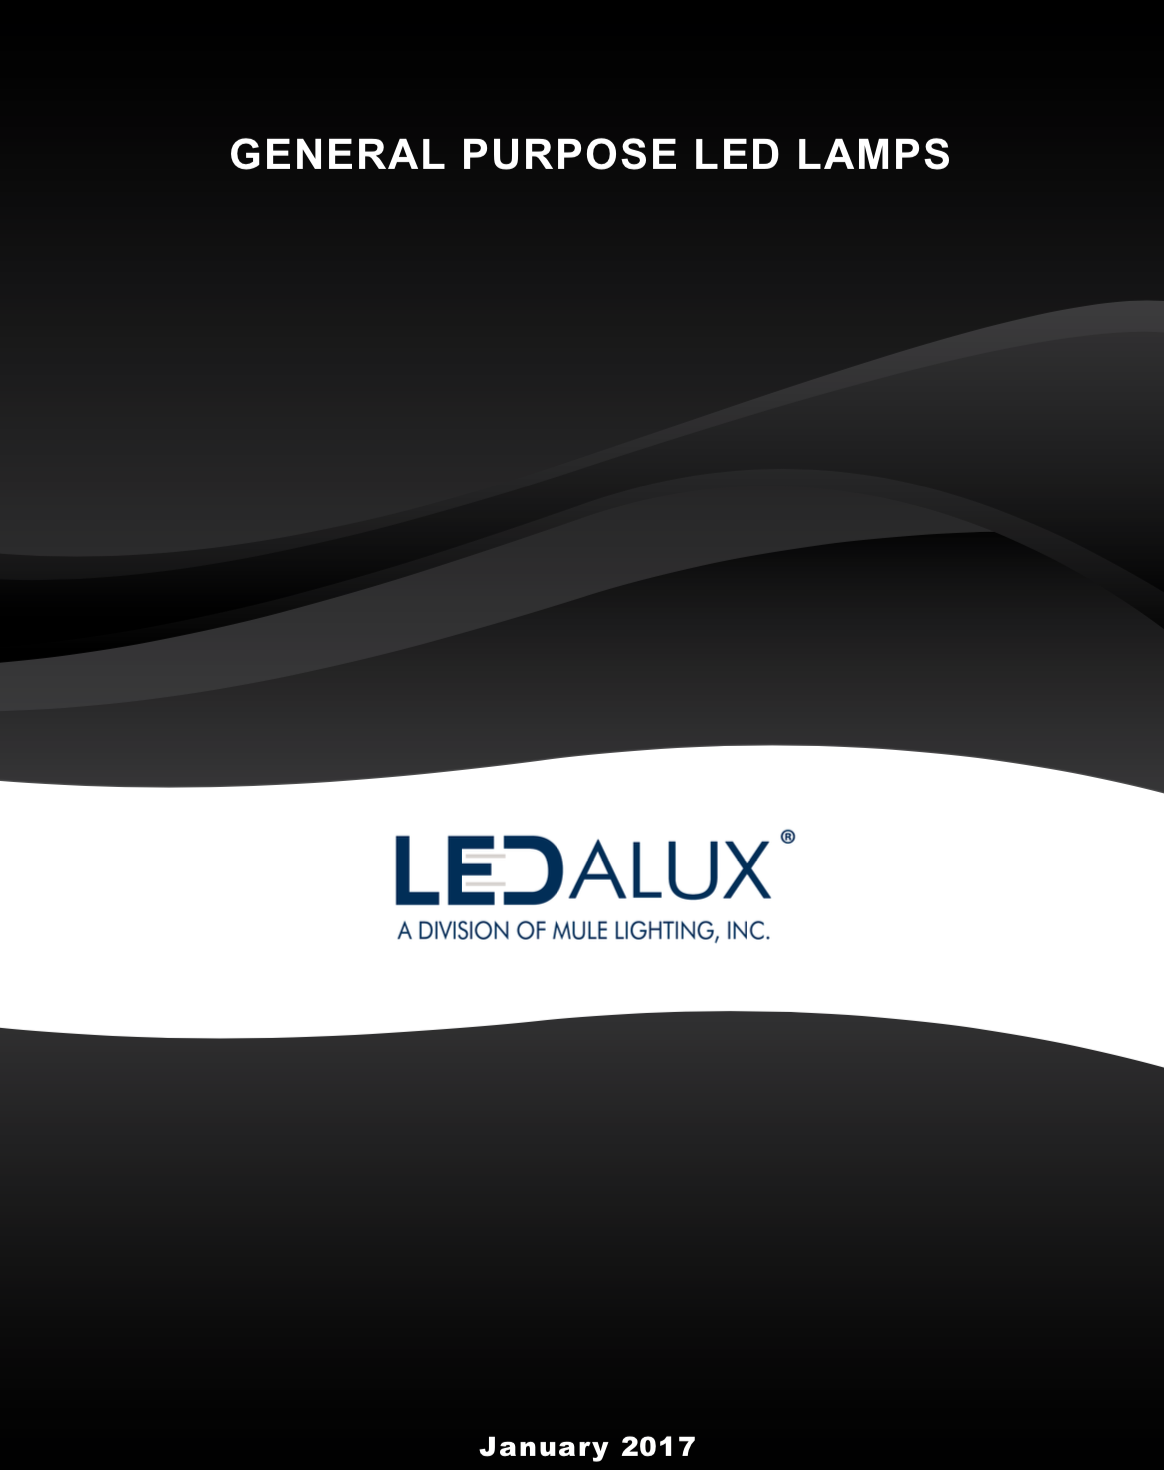 LEDalux LEDalux LED Lamp Catalog Literature